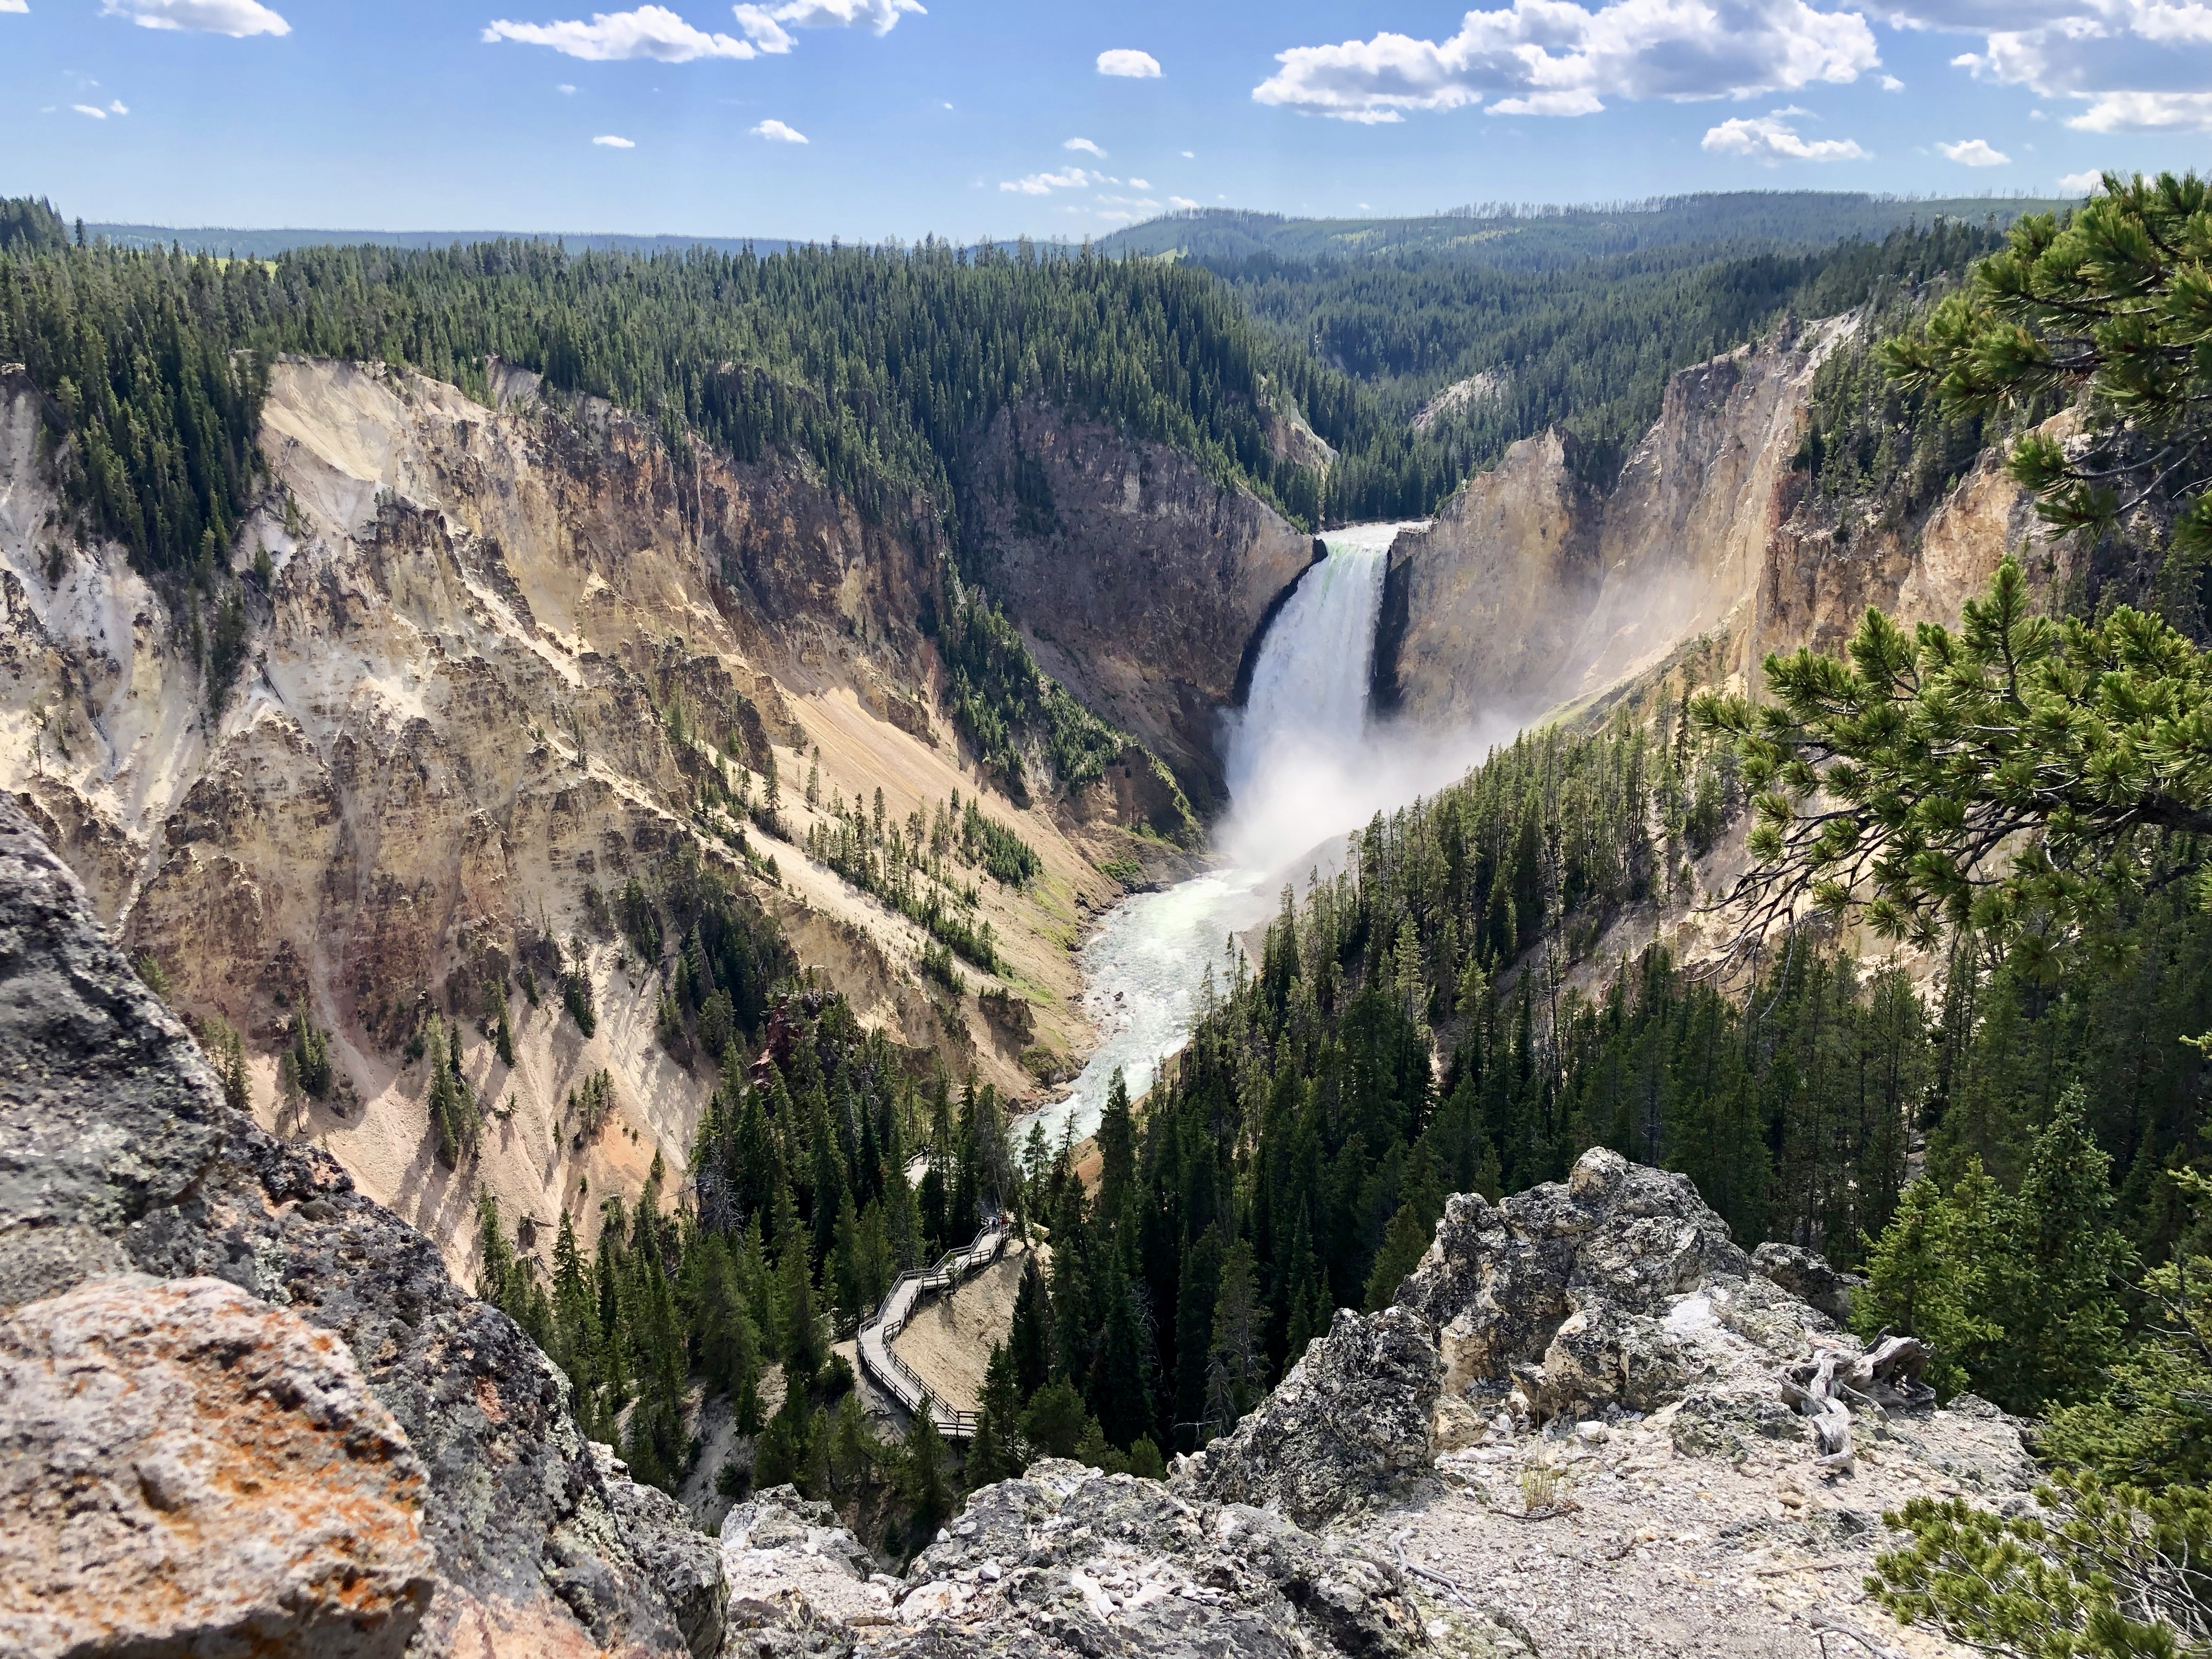 Things to do near Yellowstone National Park include Montana hiking, towns, museums.